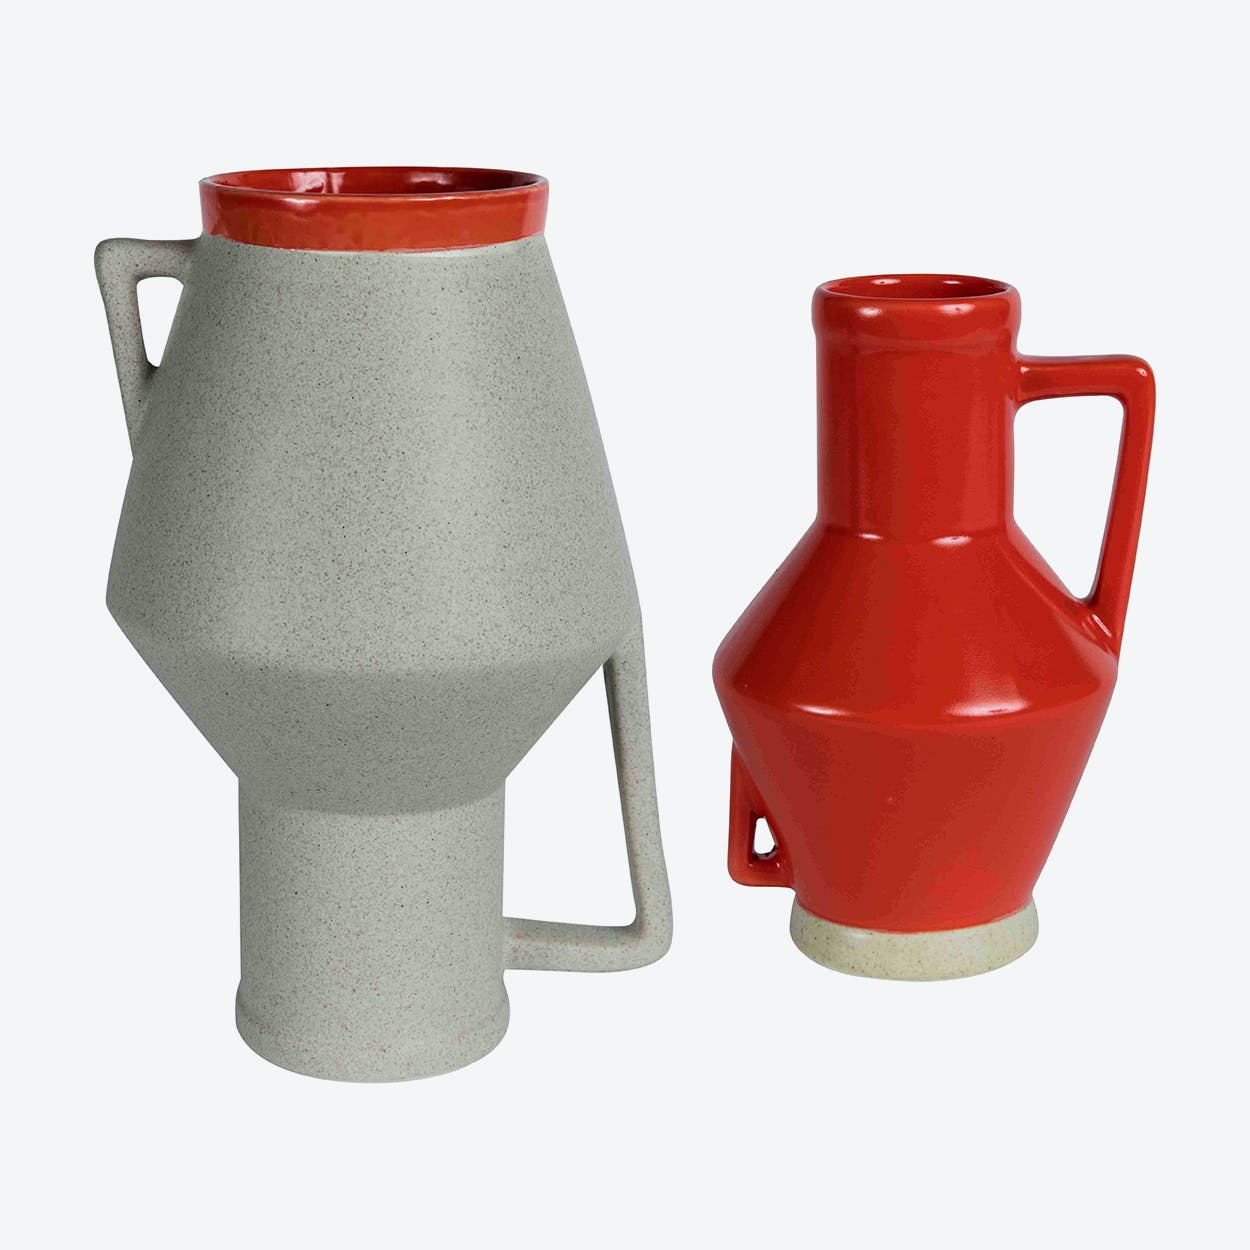 Medium Beige Vase & Small Red Vase (set of 2)